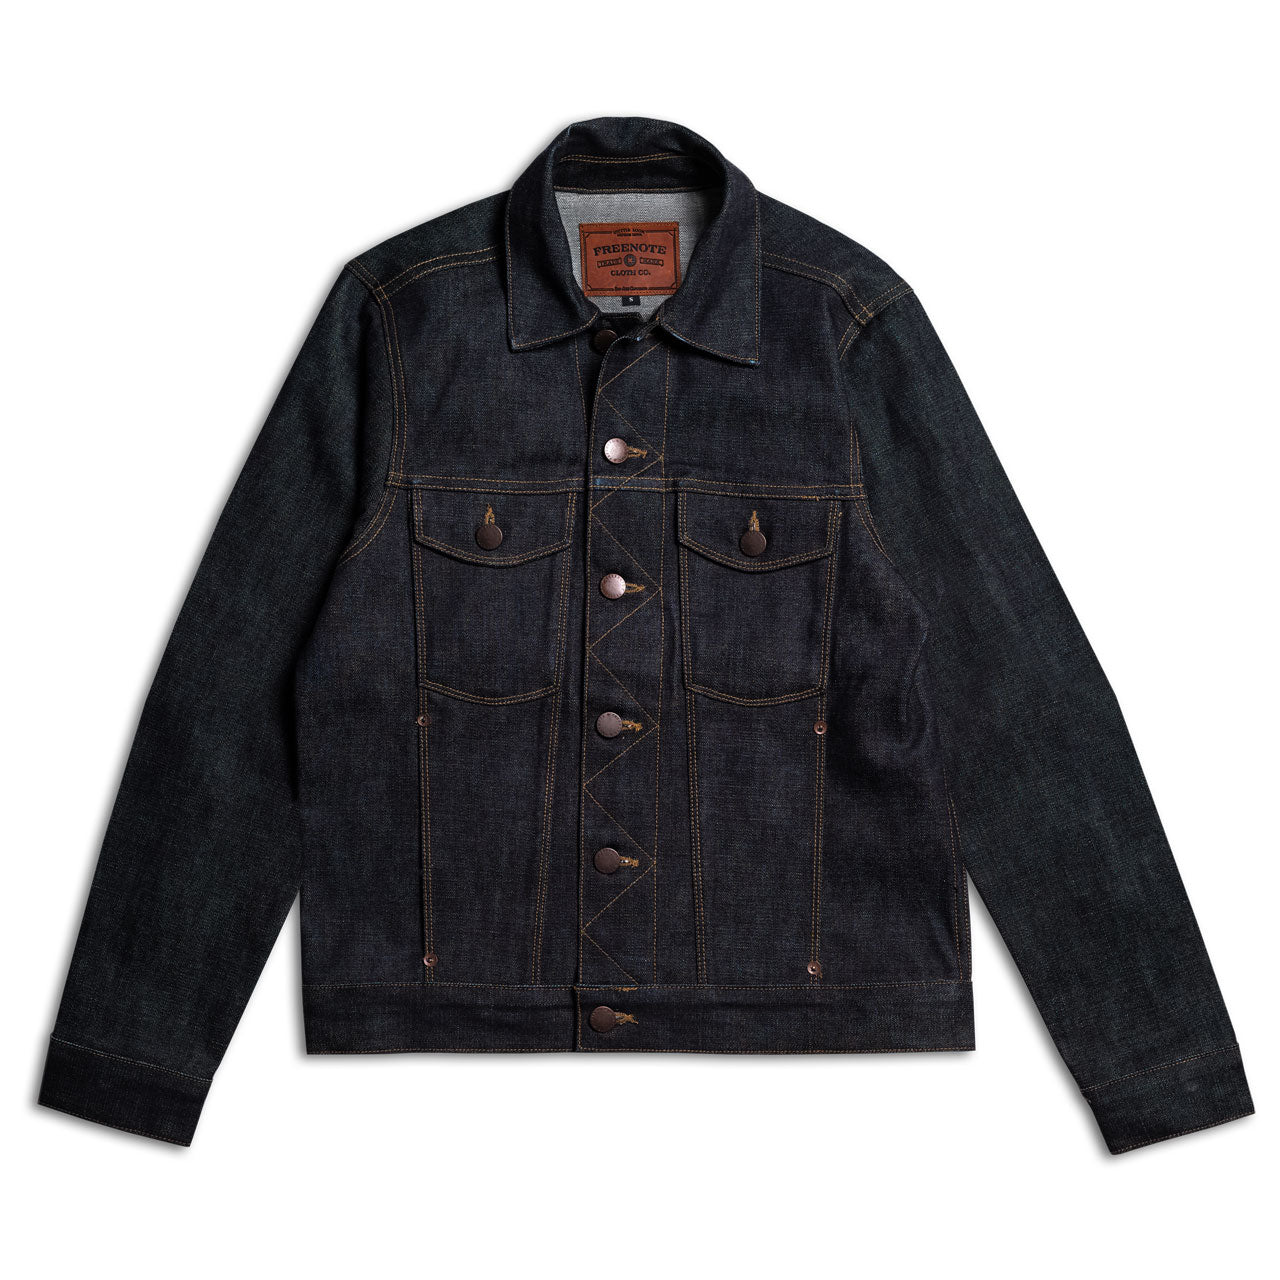 Freenote Cloth Classic Denim Jacket